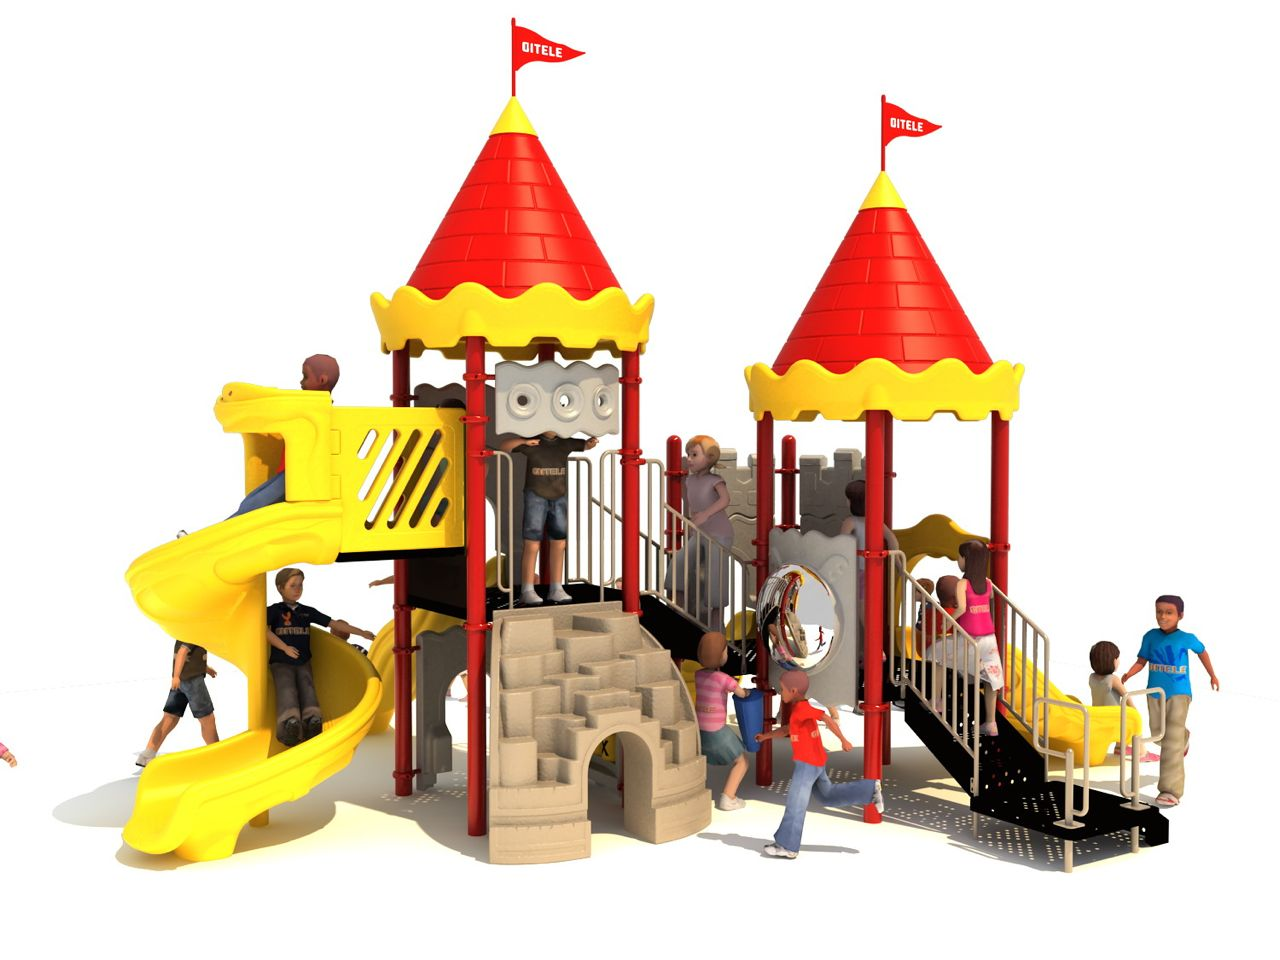 Court of Kids Play Structure by Playground Equipment Dot-com